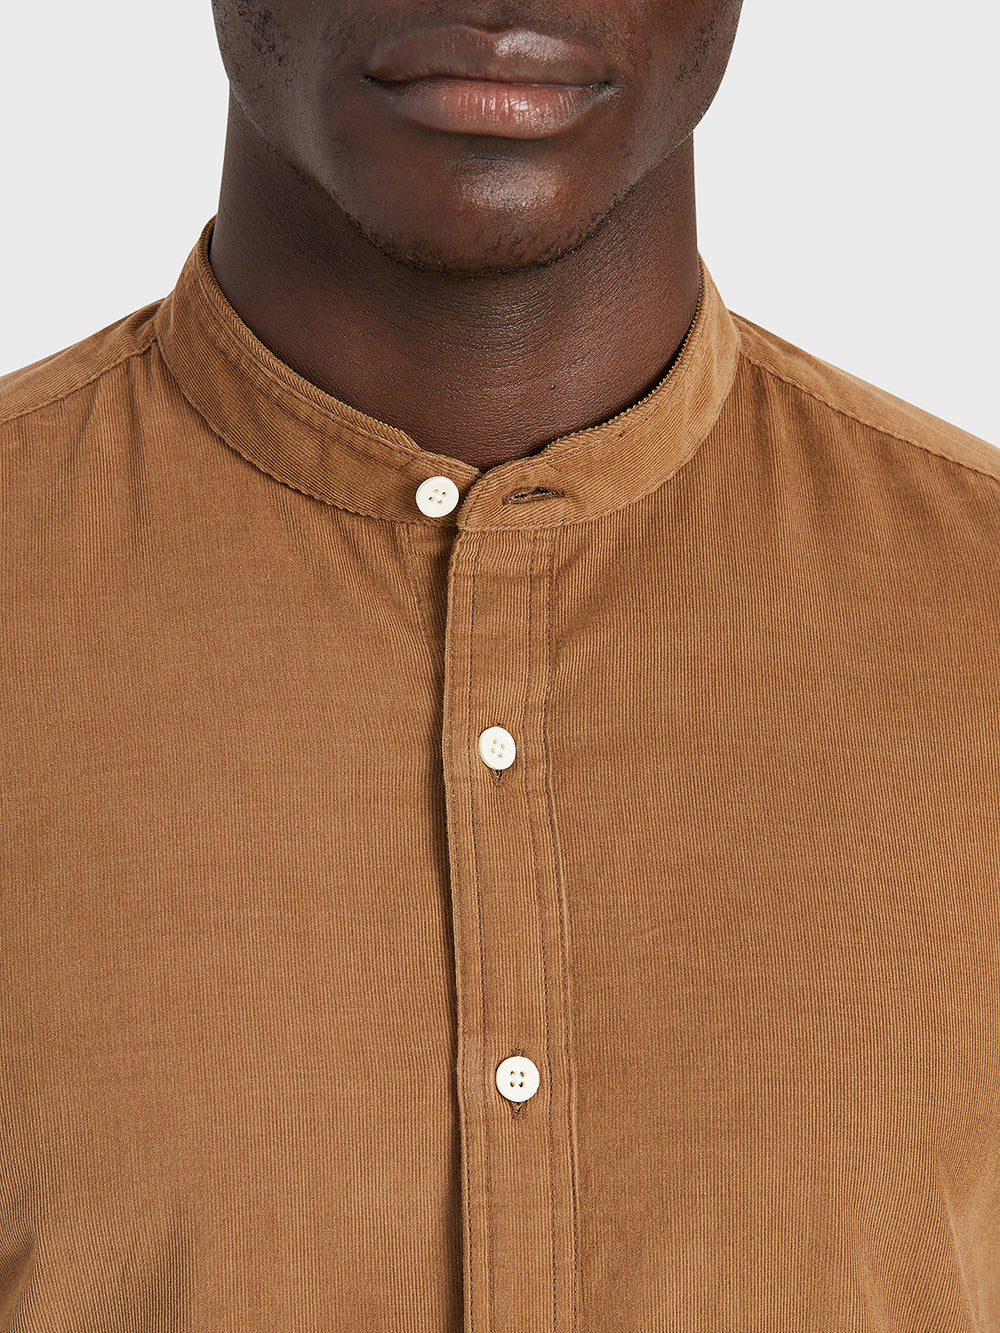 ONS Clothing Men's shirt in COFFEE